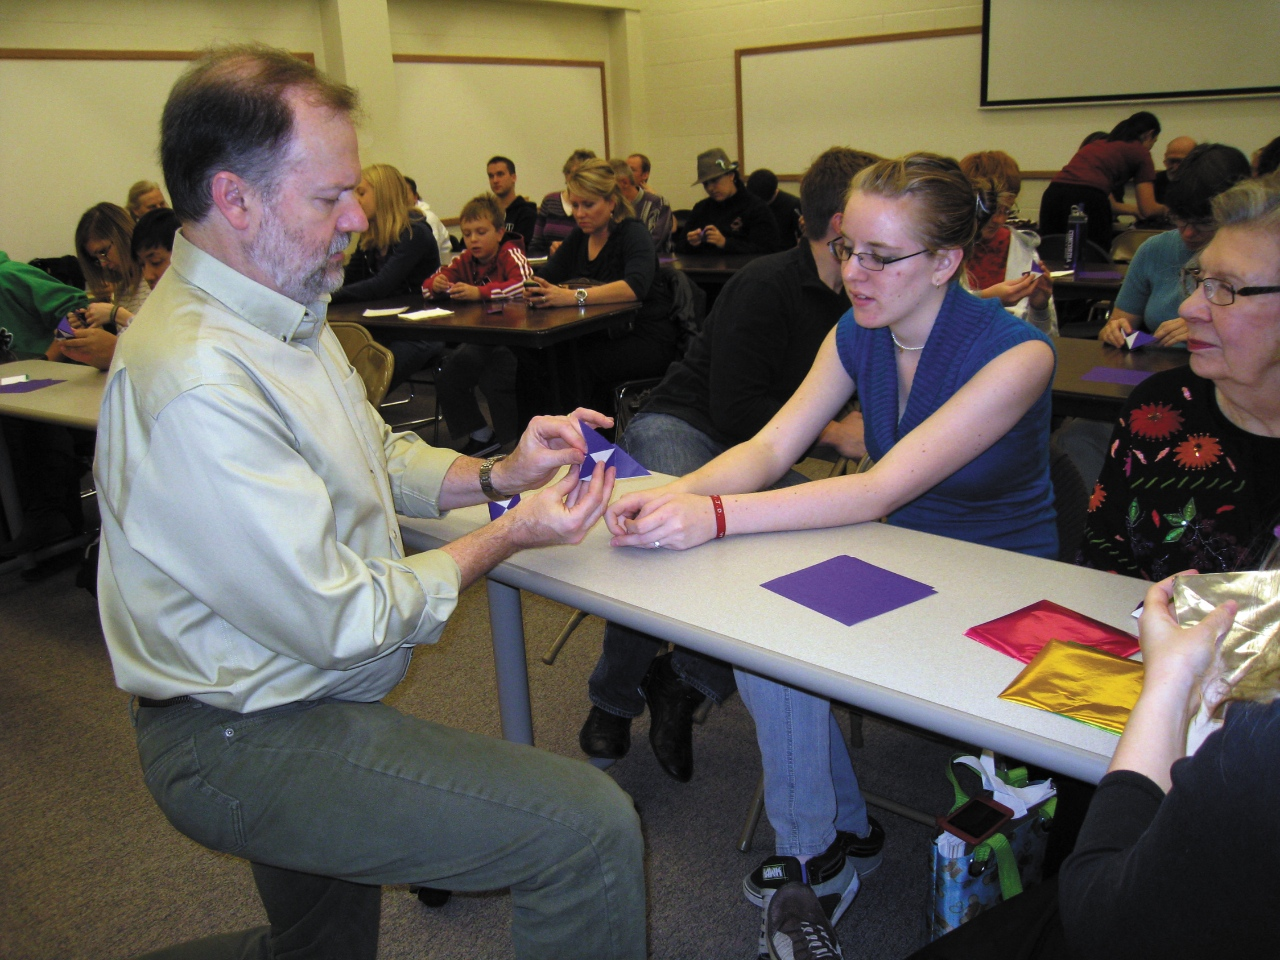 Photo by Lexi Robinson. Dr. Robert Lang demonstrated the art of origami to celebrate the 100th anniversary of the Mathematics department at Concordia Oct. 19.